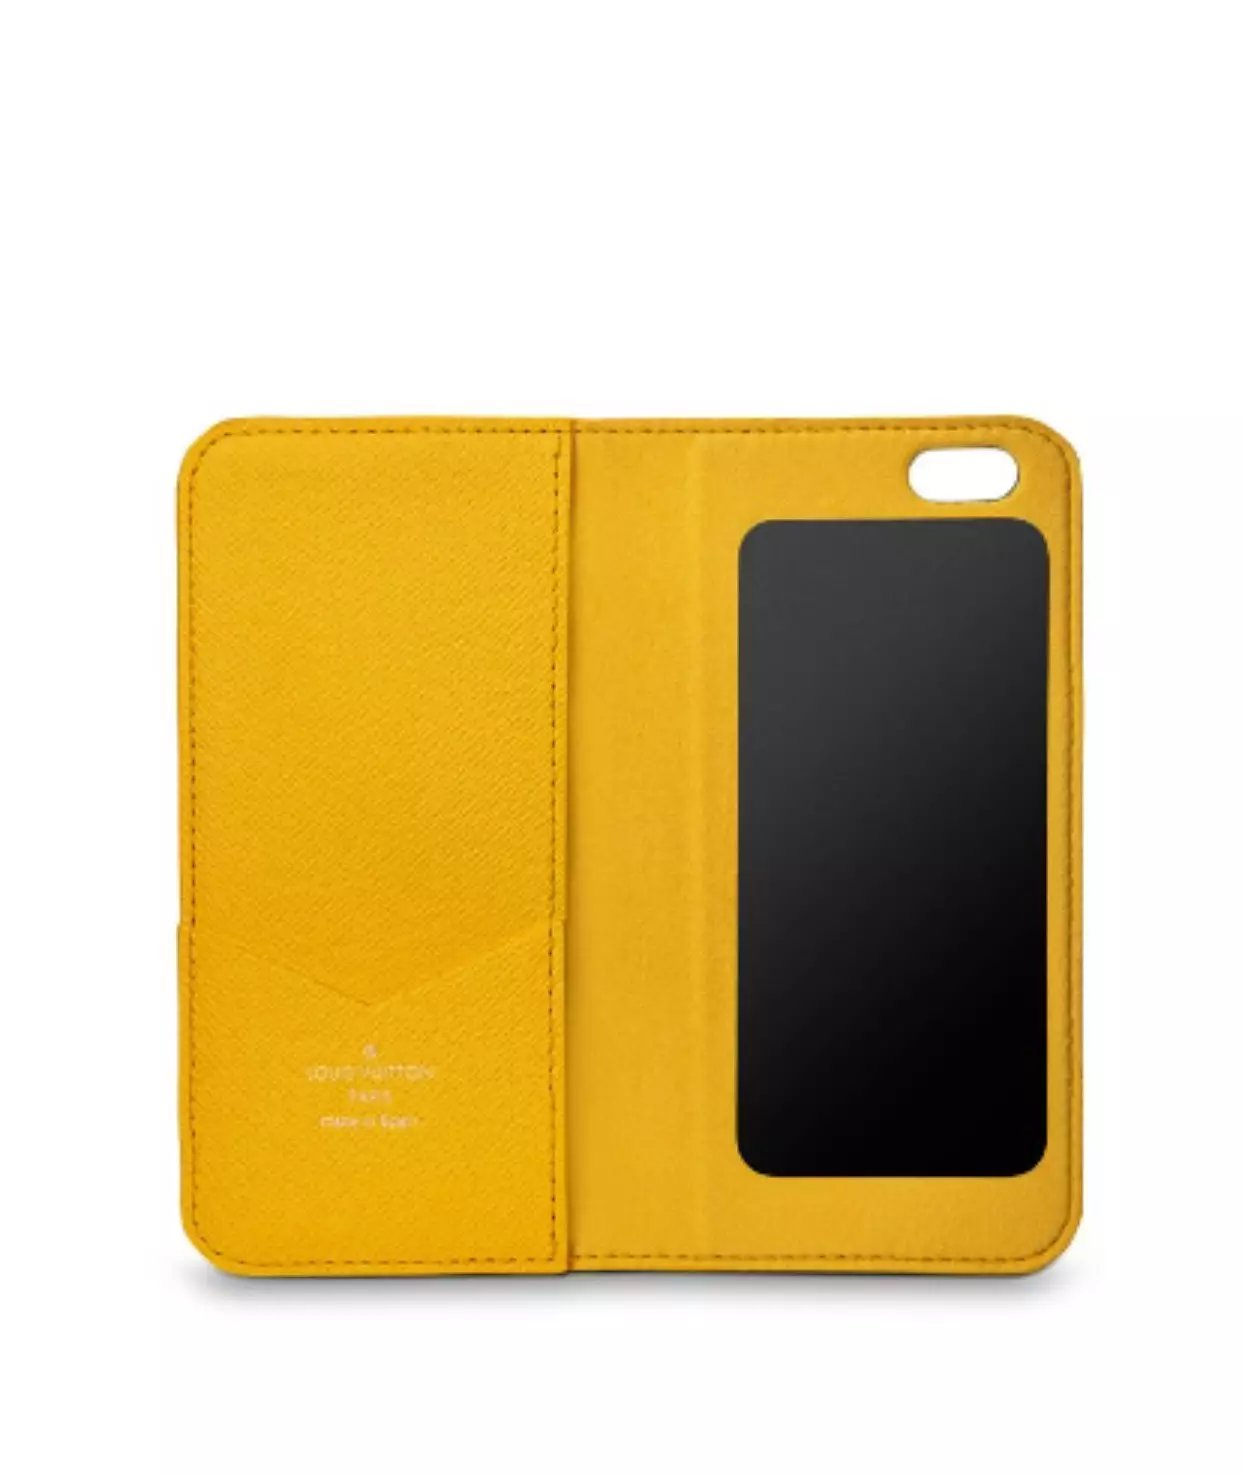 iphone case gestalten iphone hülle designen Louis Vuitton iphone 8 hüllen hülle iphone 3gs apple news iphone durchsichtige hülle iphone 8 silikon ca8 elbst gestalten handy cover design tasche für iphone 8